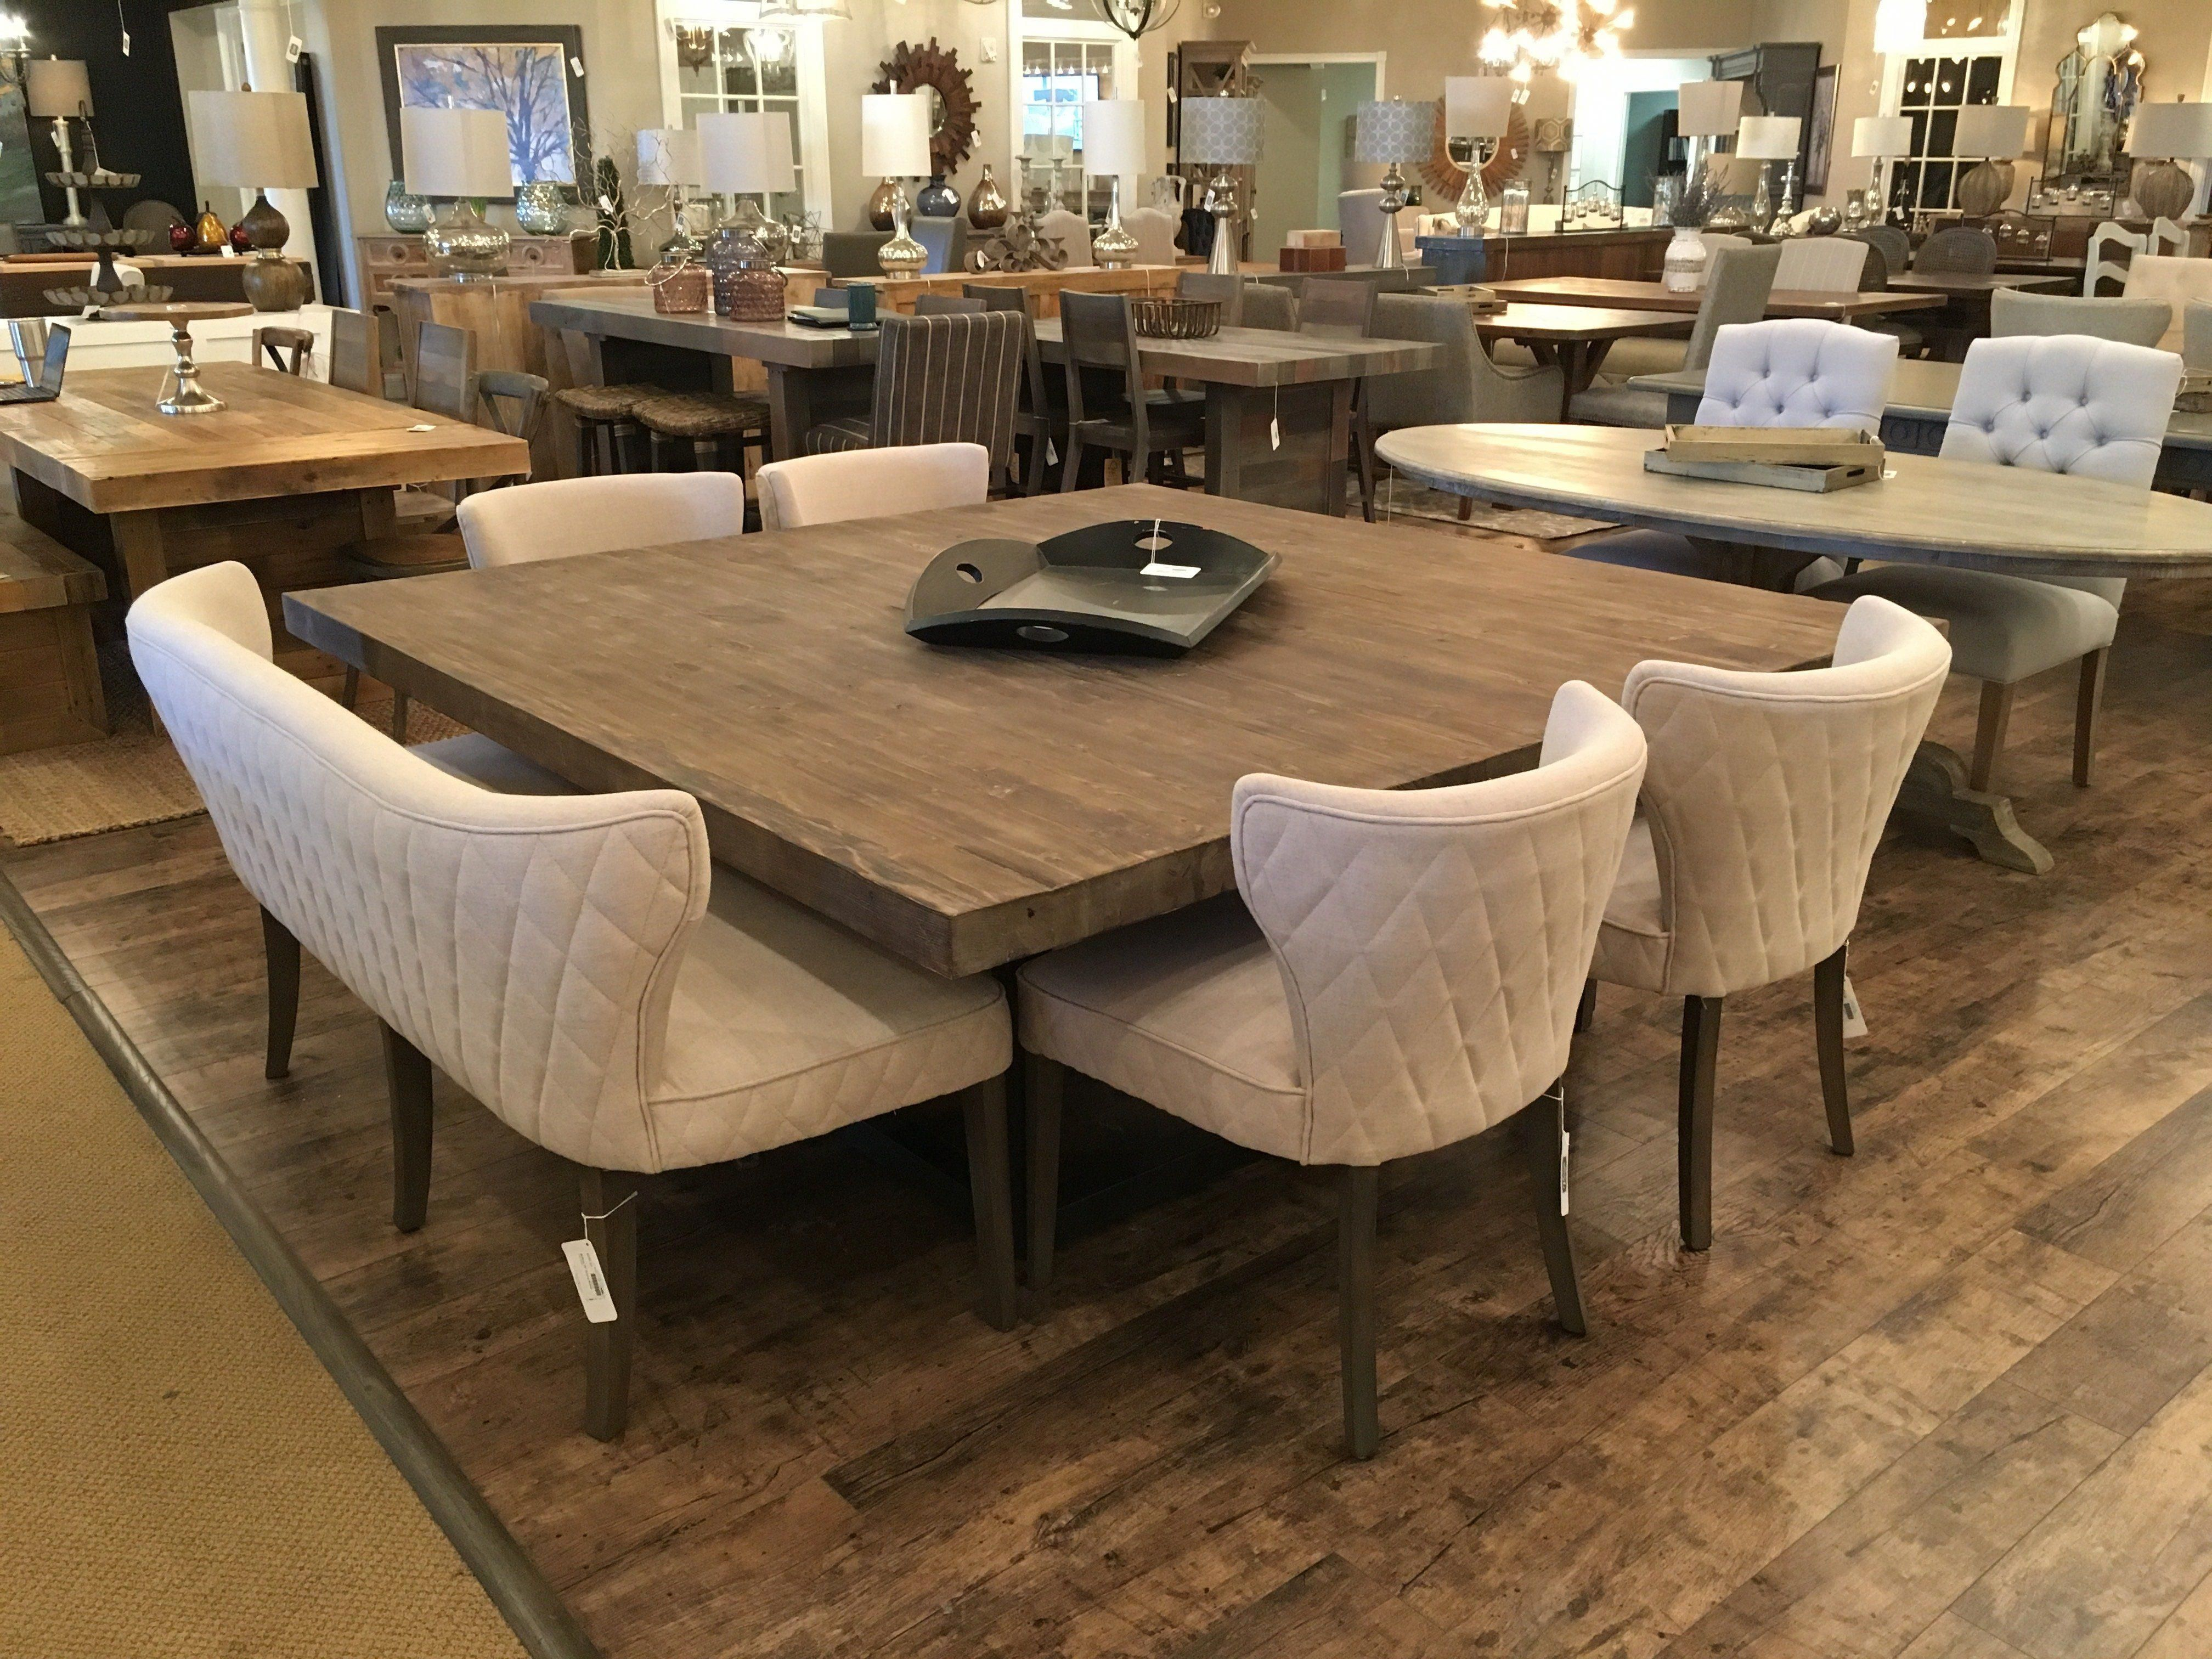 You Ll Be Able To Discover Dining Room Ideas For Decorating In Everything From Victorian T Square Dining Room Table Square Dining Tables Square Kitchen Tables